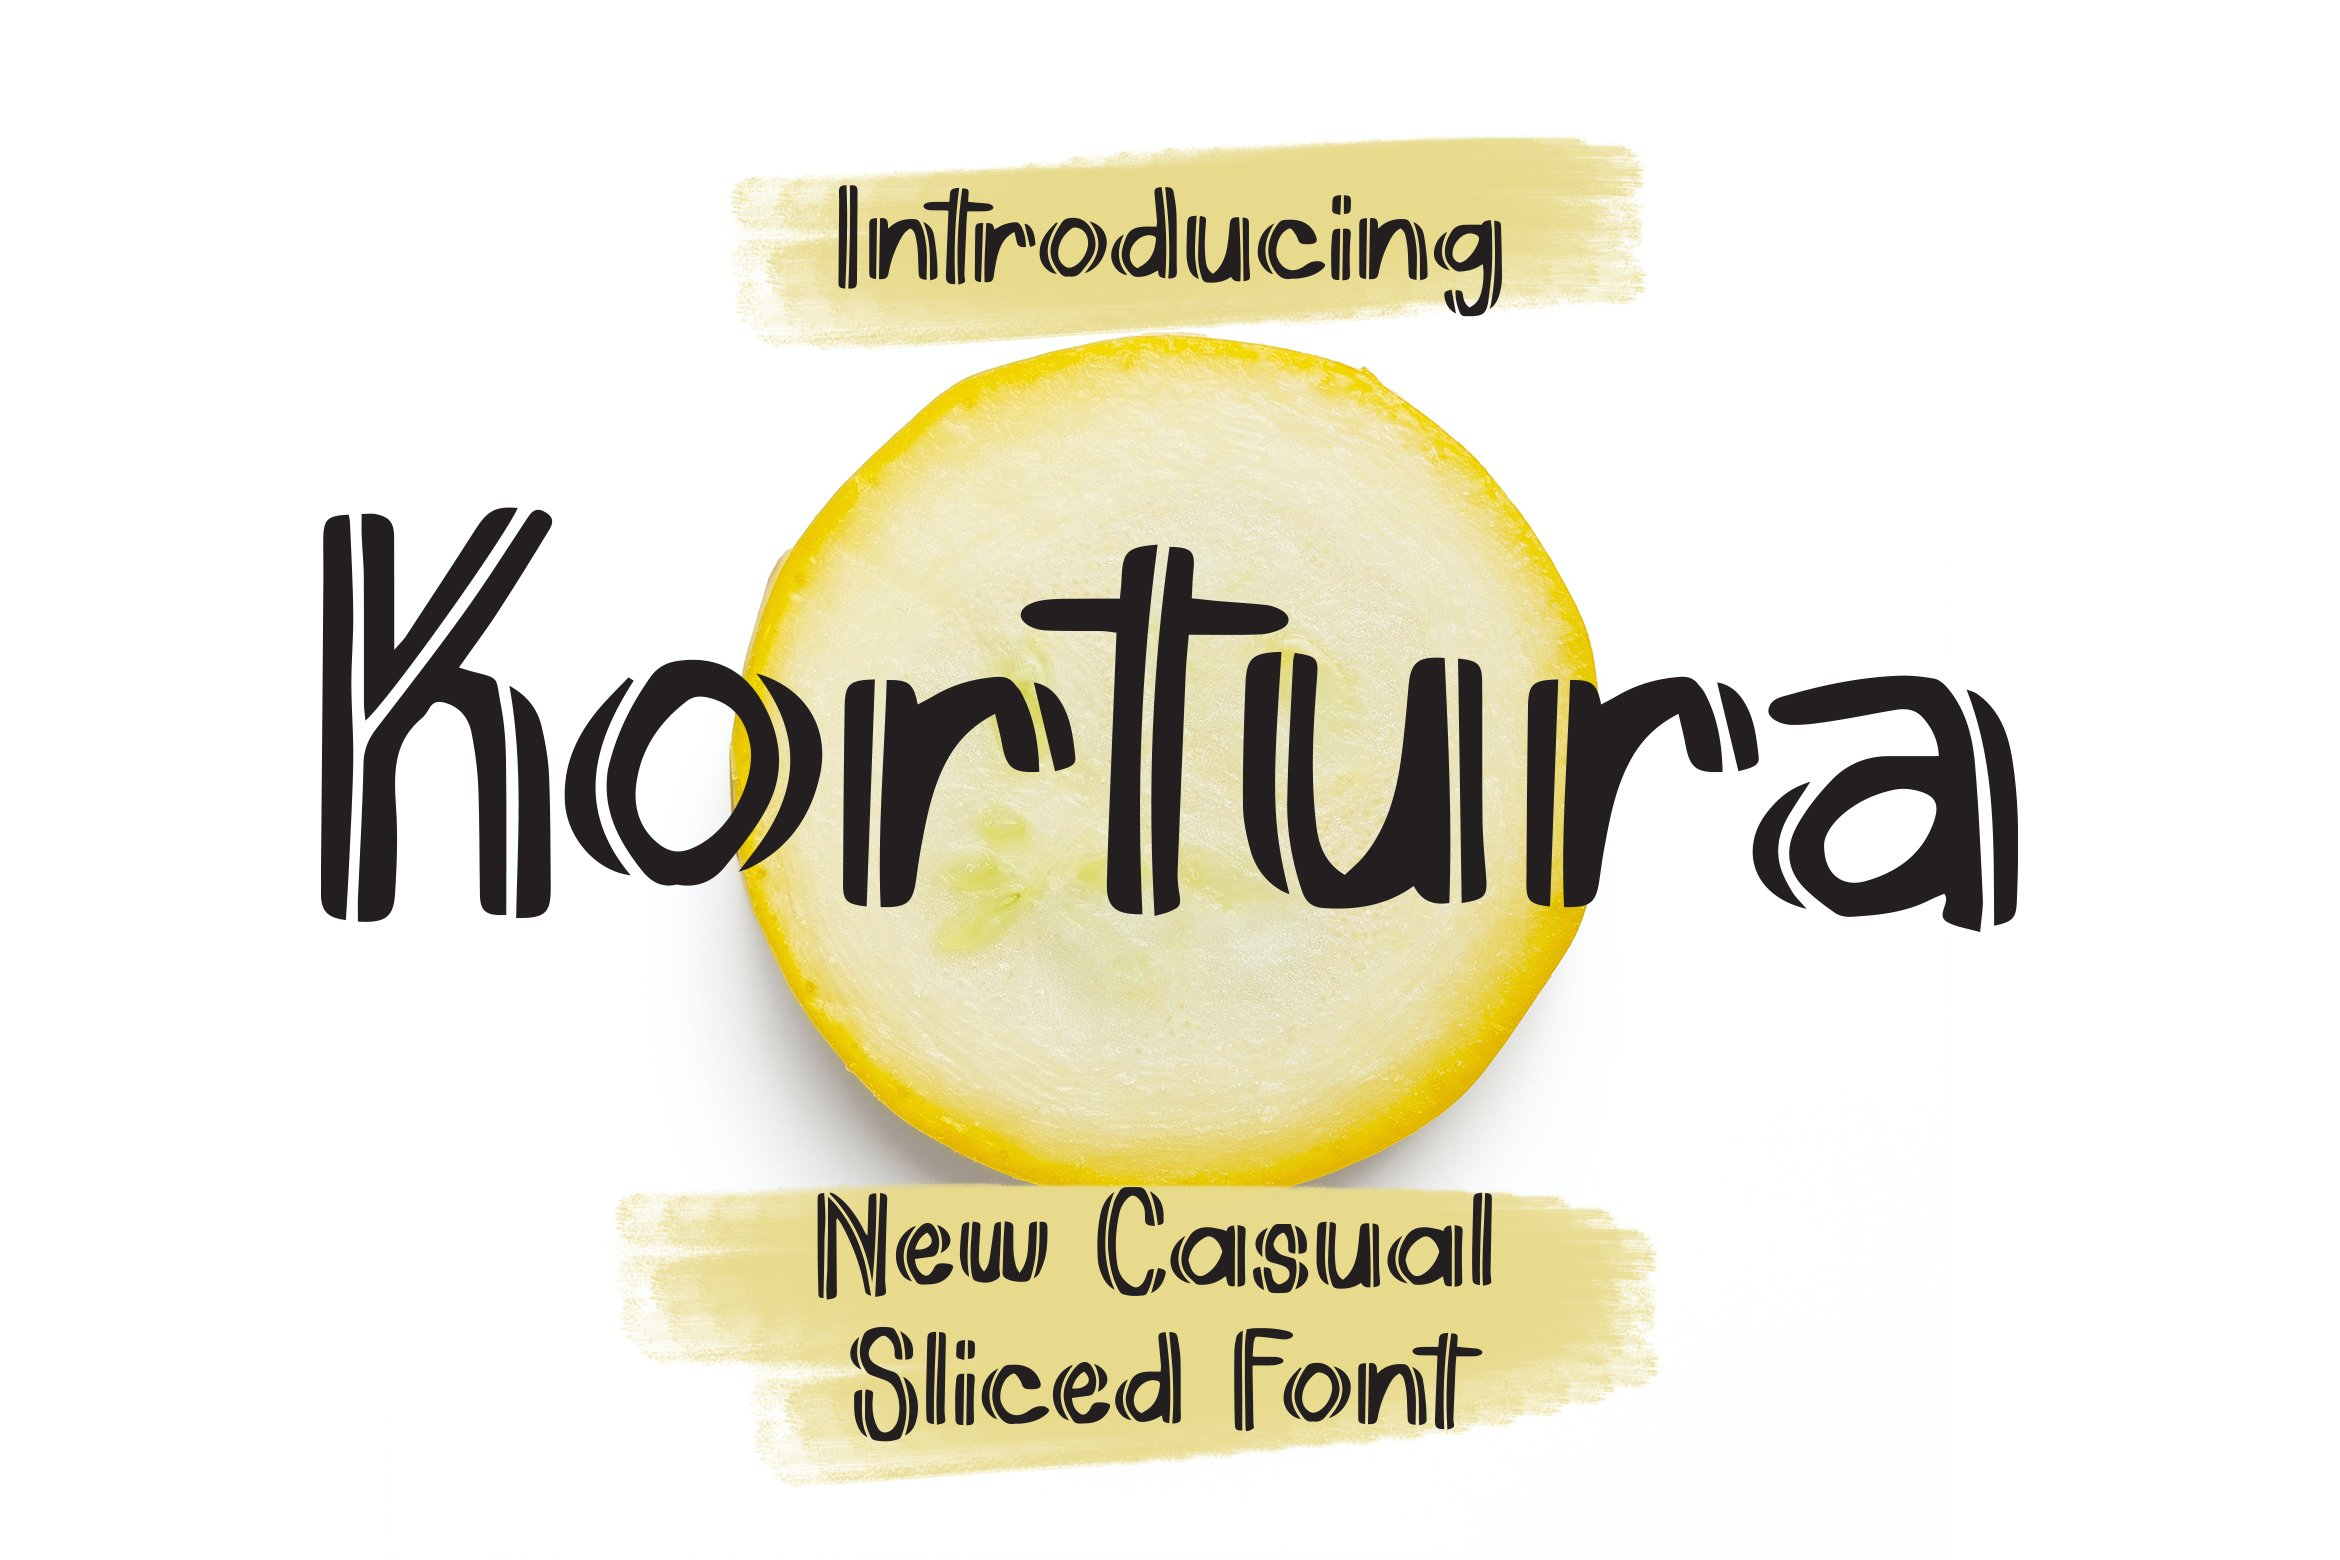 Kortura - Casual Sliced Font example image 1